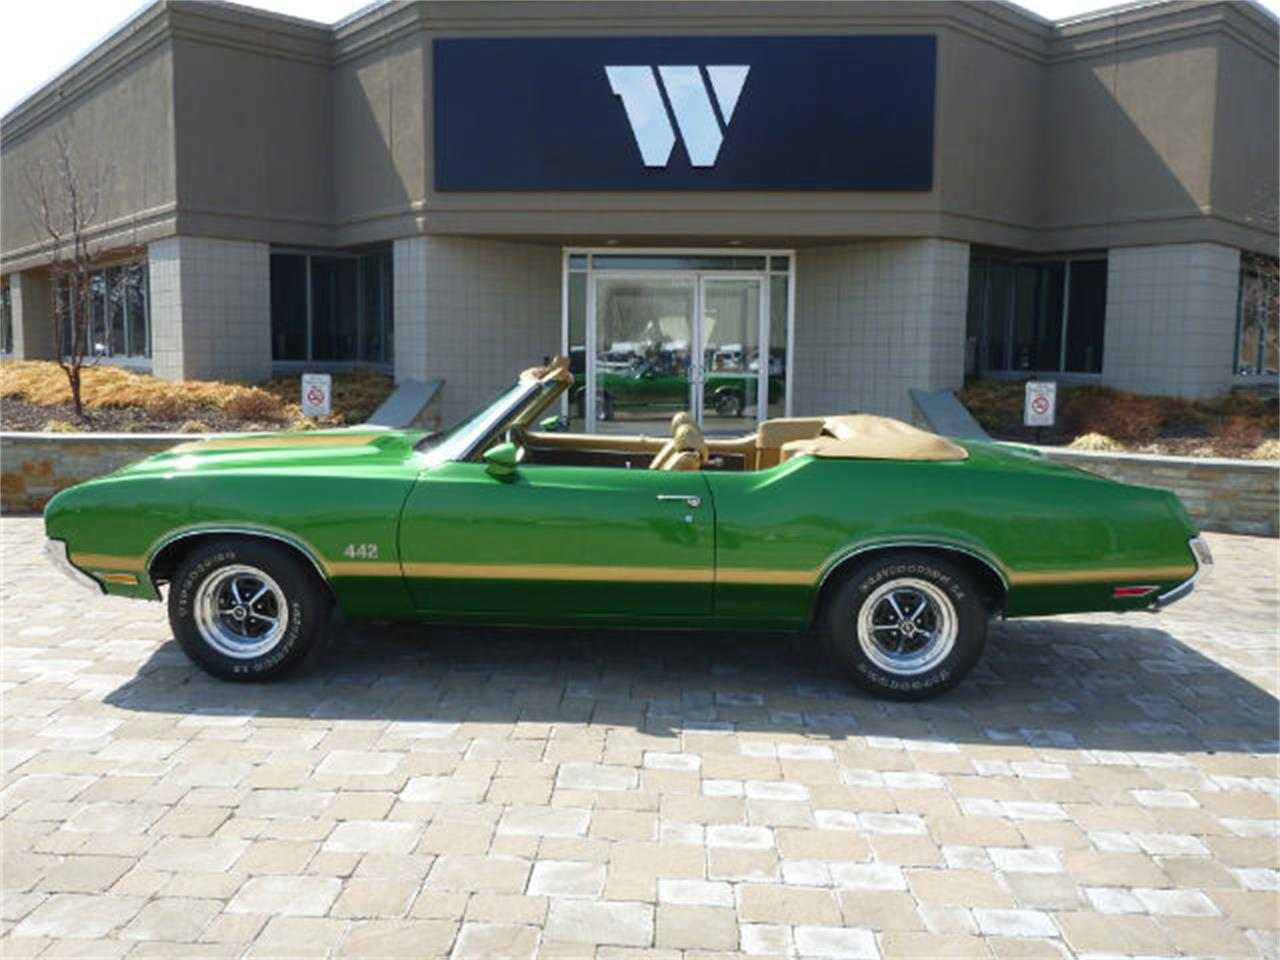 Large Picture of Classic '70 Cutlass 442 located in Milford Ohio - $133,400.00 - M0ML